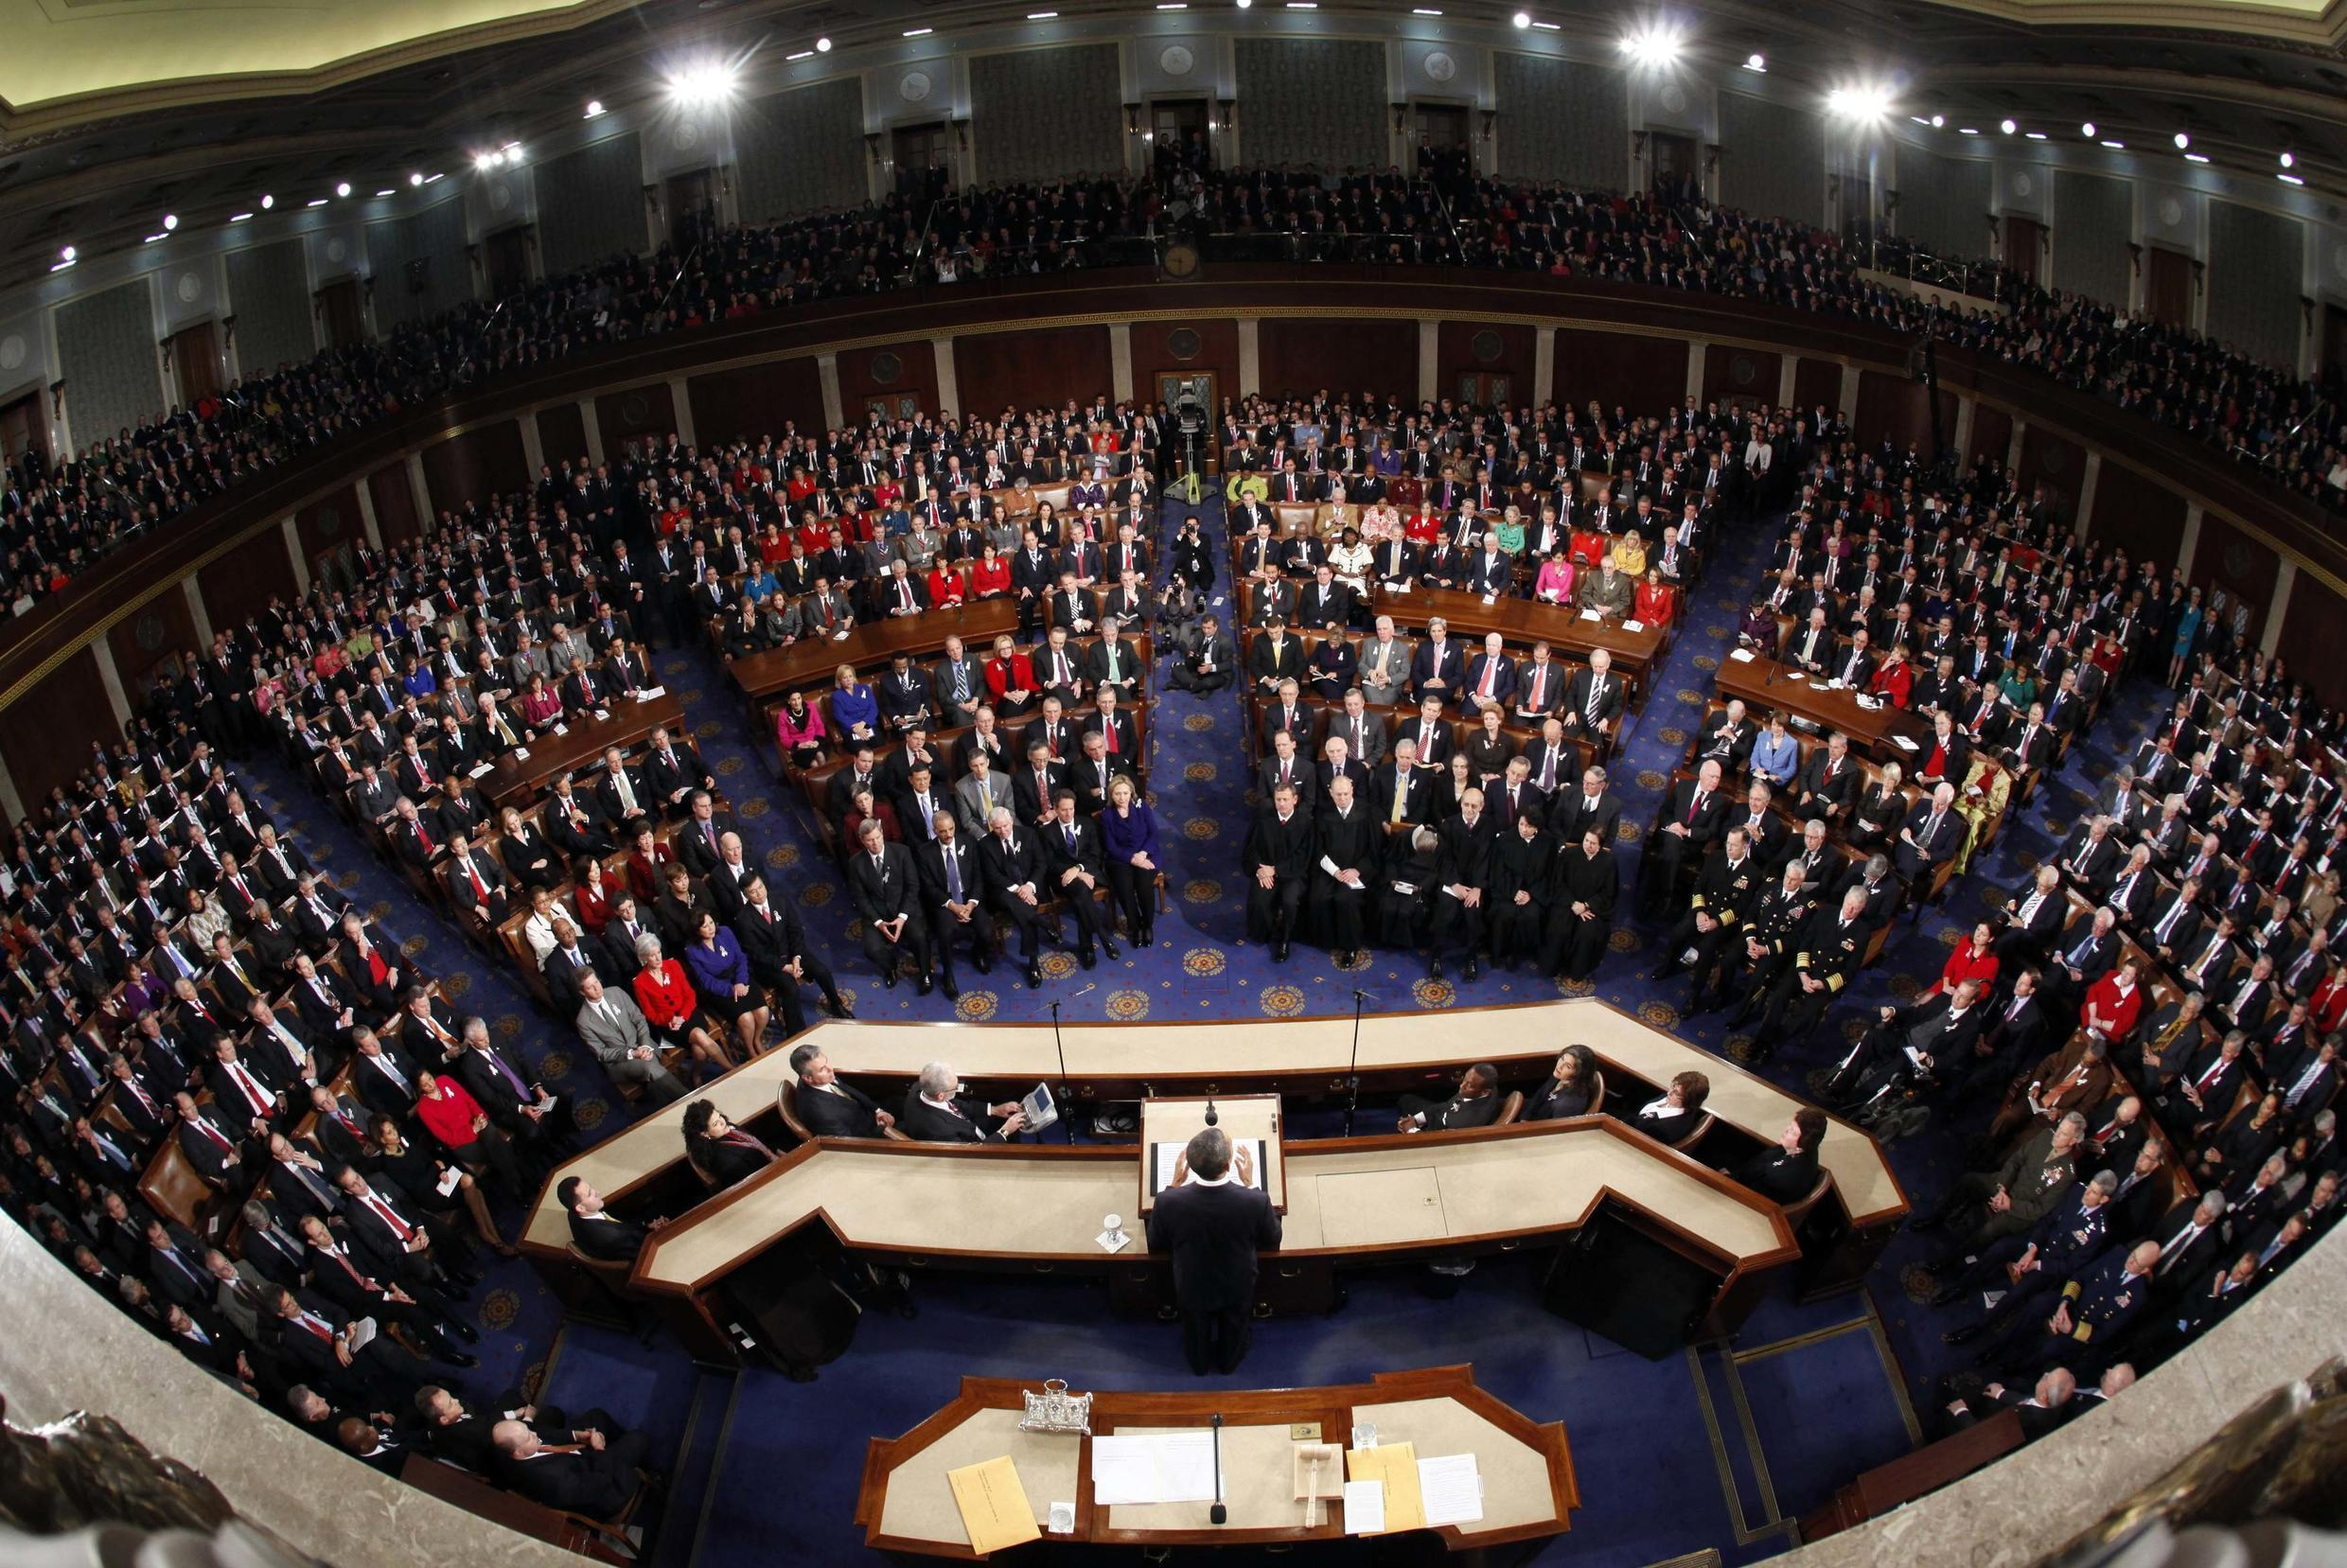 Barack Obama gives his 2011 State of the Union address.